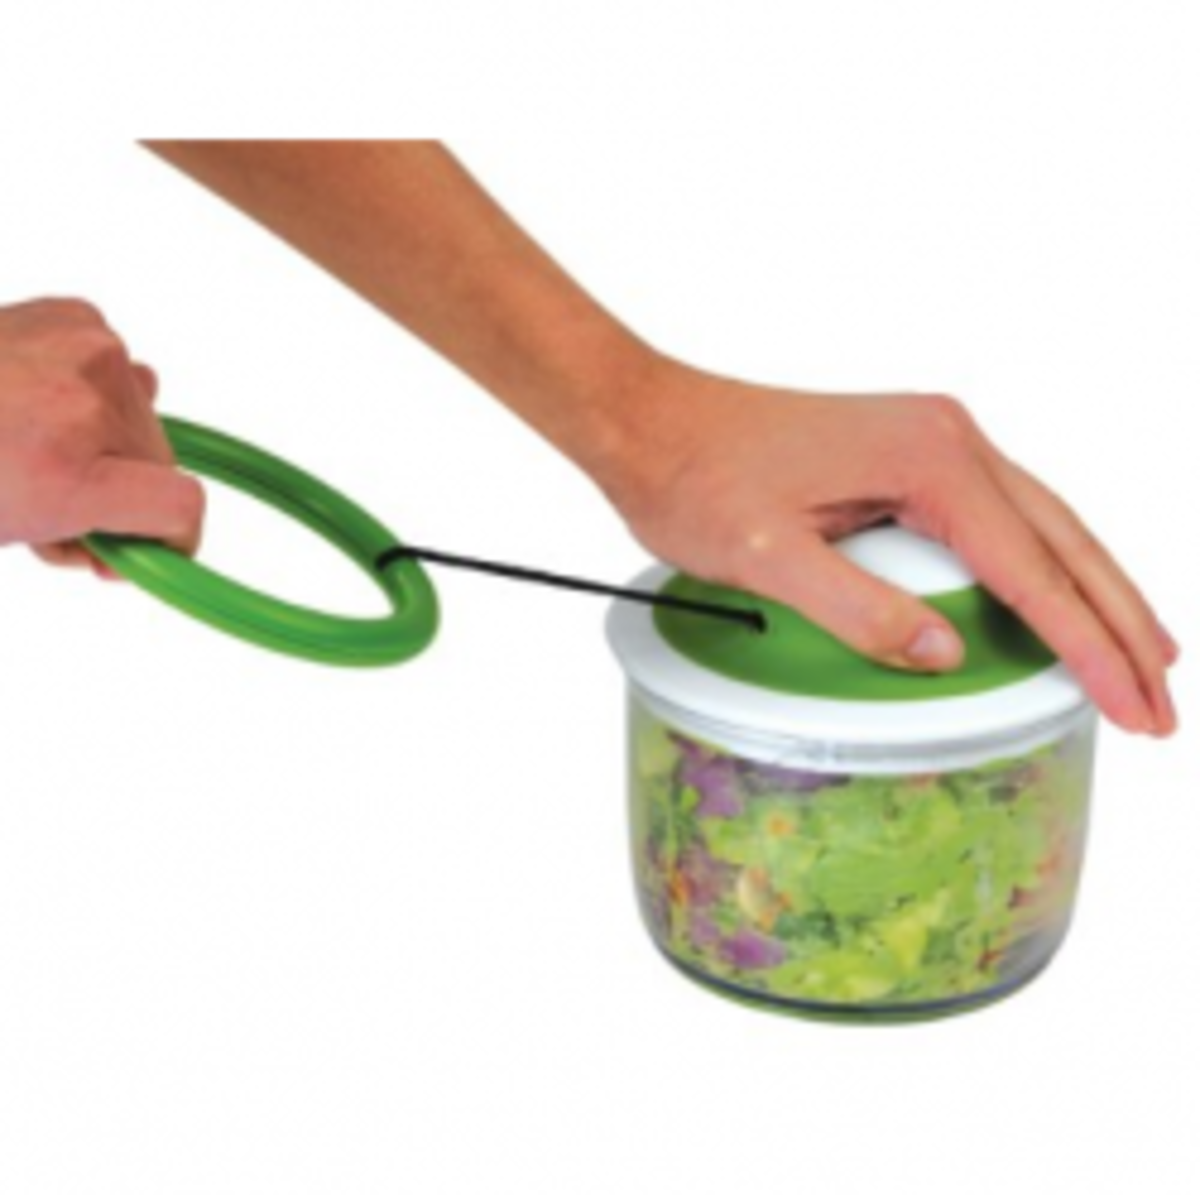 preparing-no-chew-foods-with-a-hand-chopper